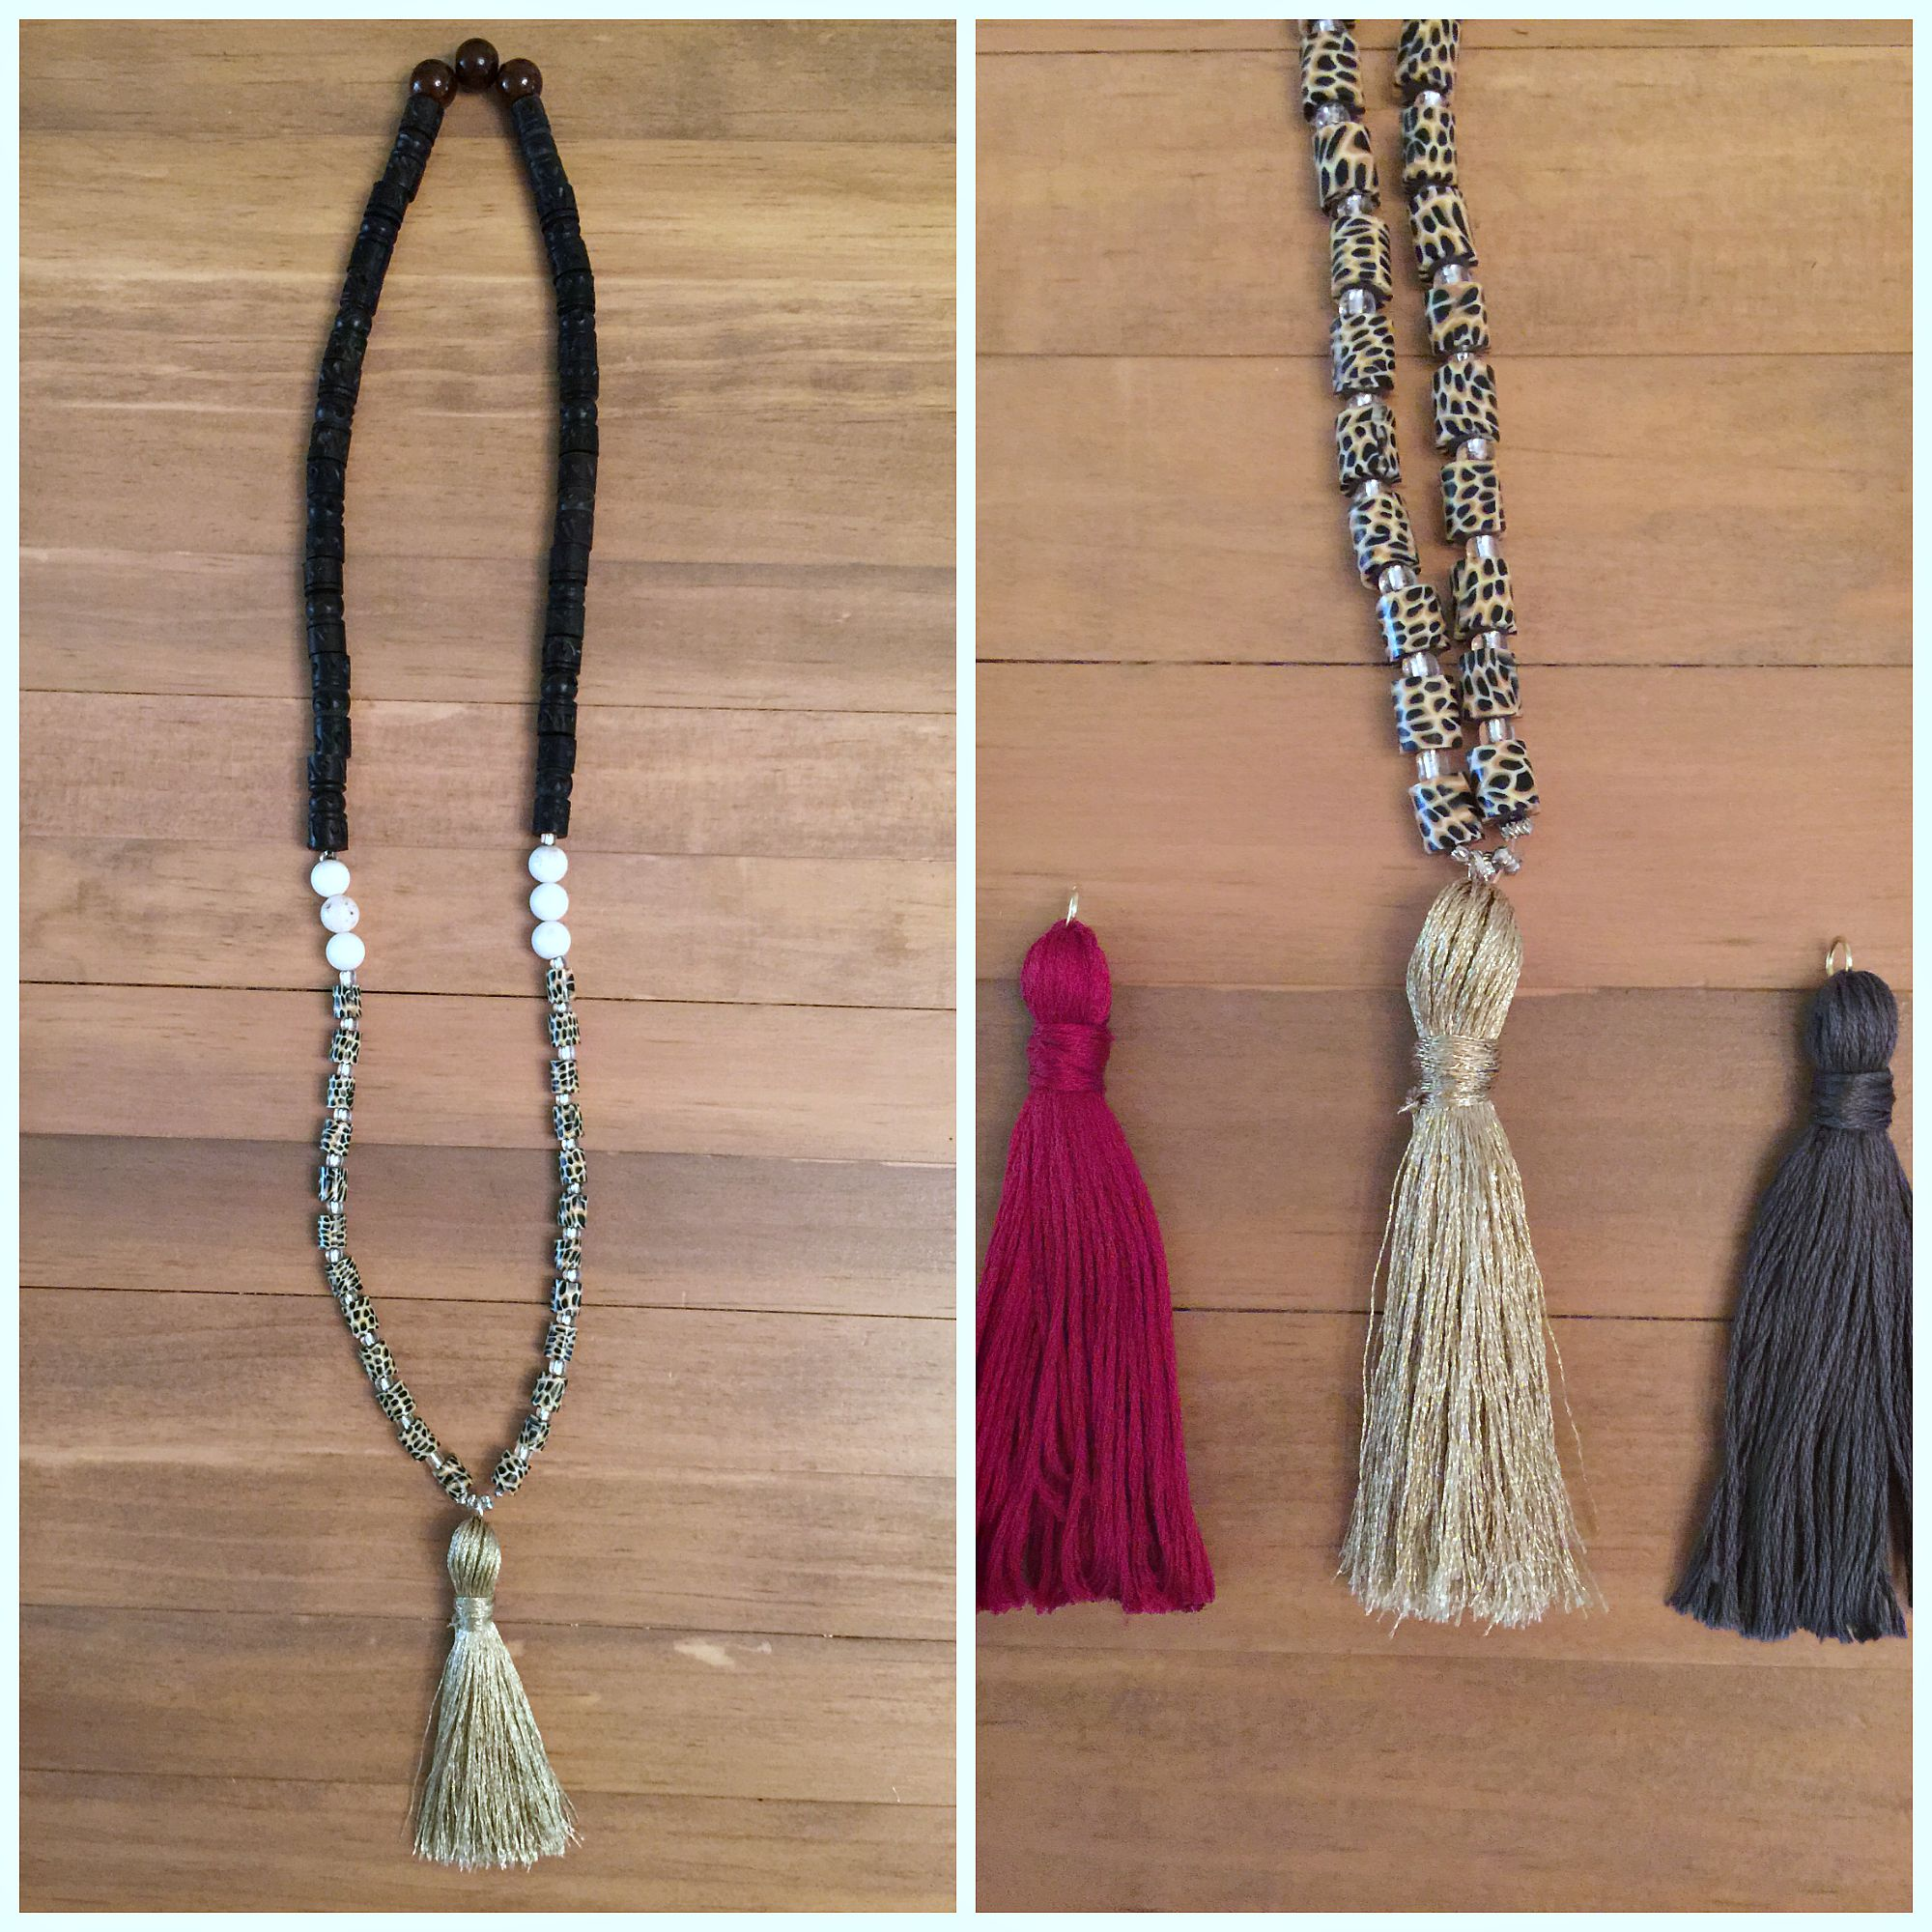 sahuri necklaces convertible os necklace size alternate tassel view product